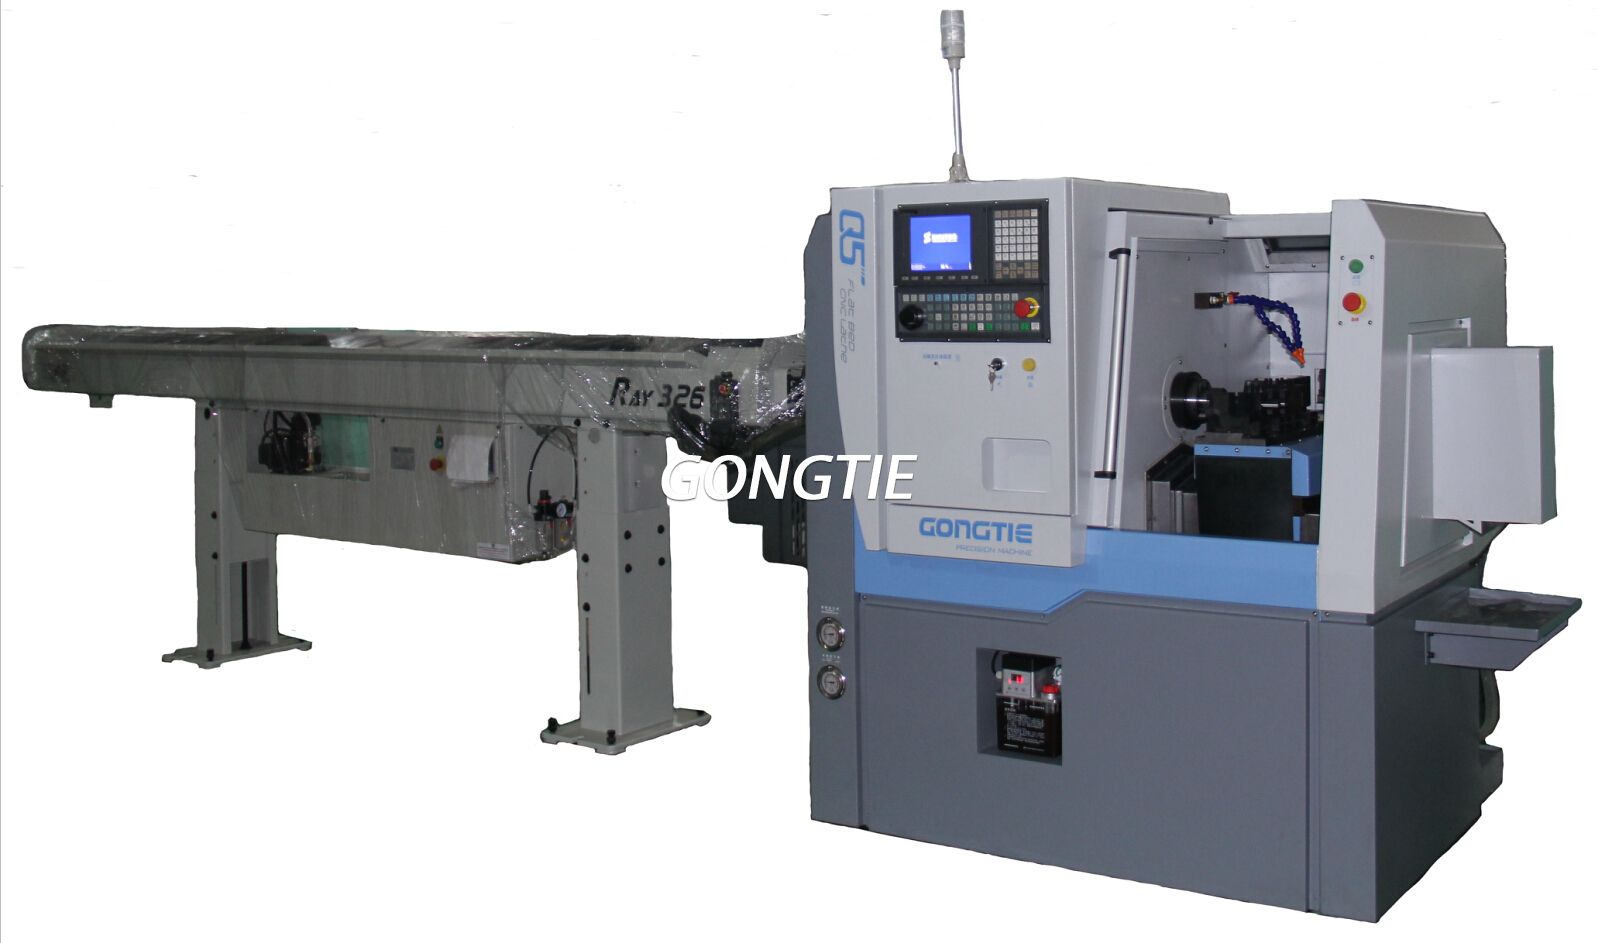 CNC lathe with bar feeder